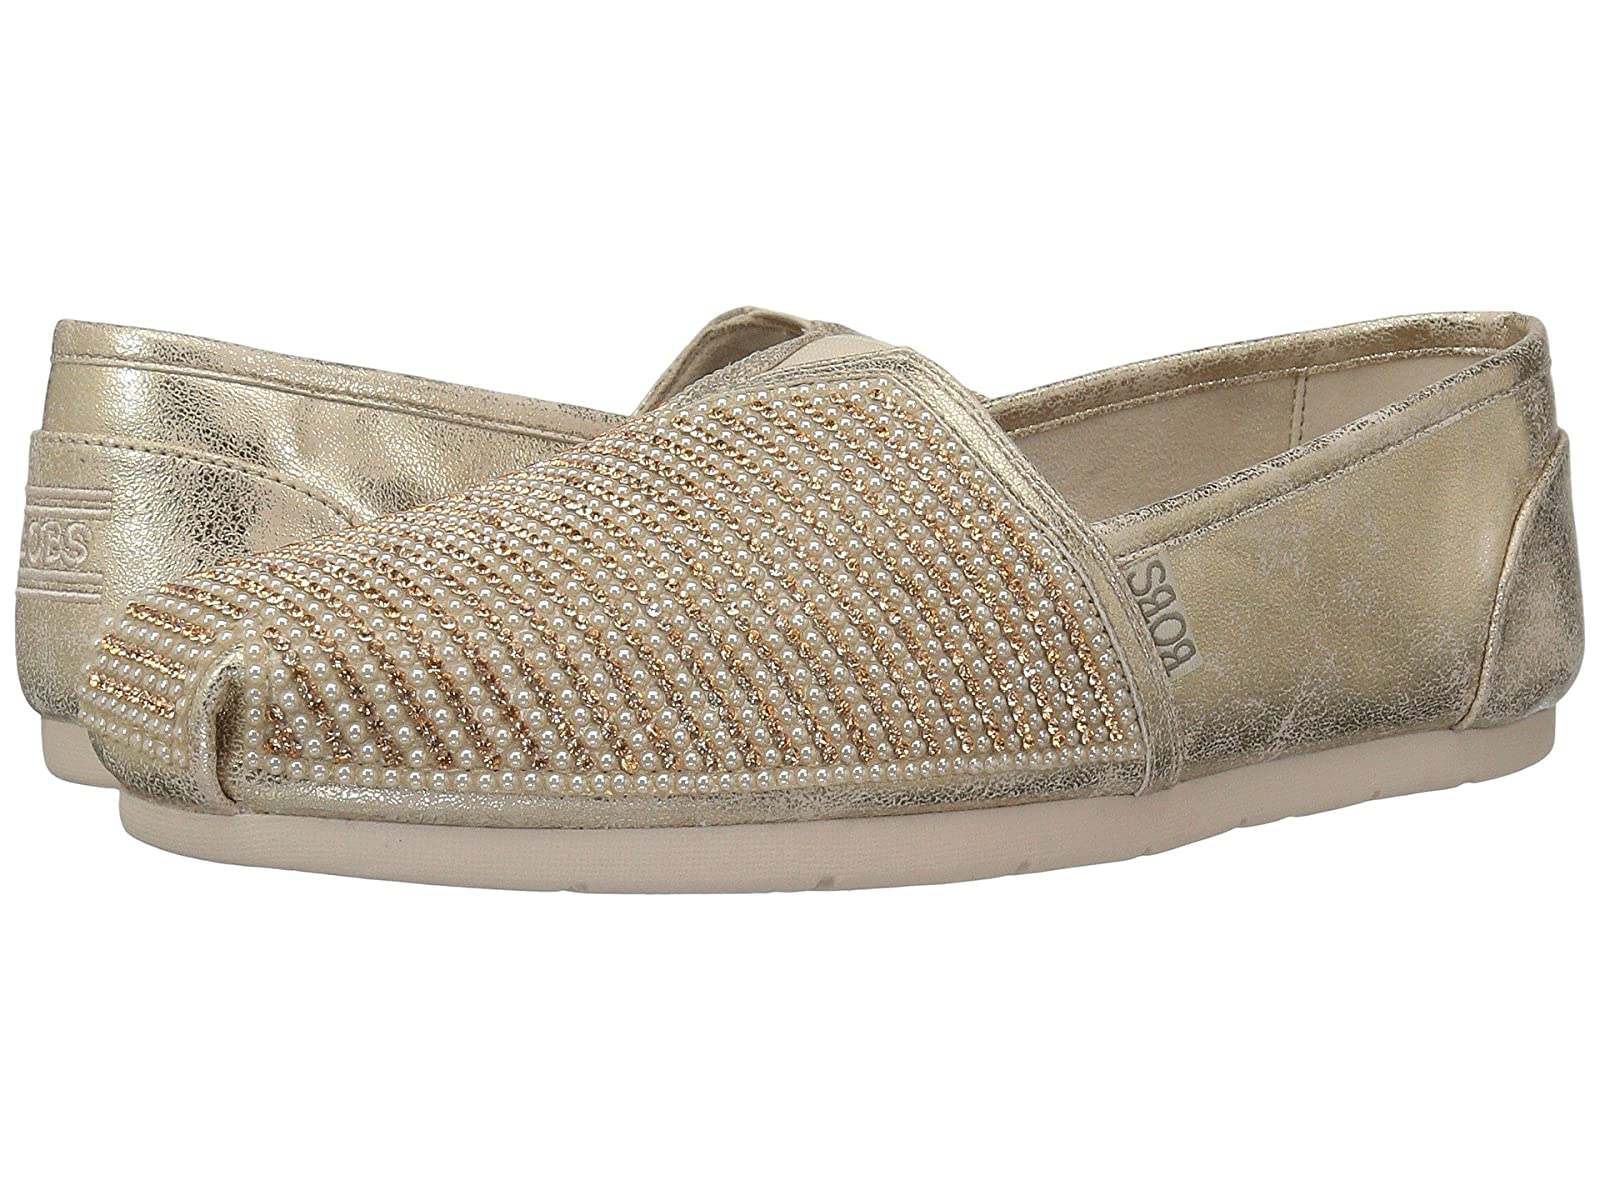 BOBS from SKECHERS Luxe Bobs - Big DreamerAtmospheric grades have affordable shoes